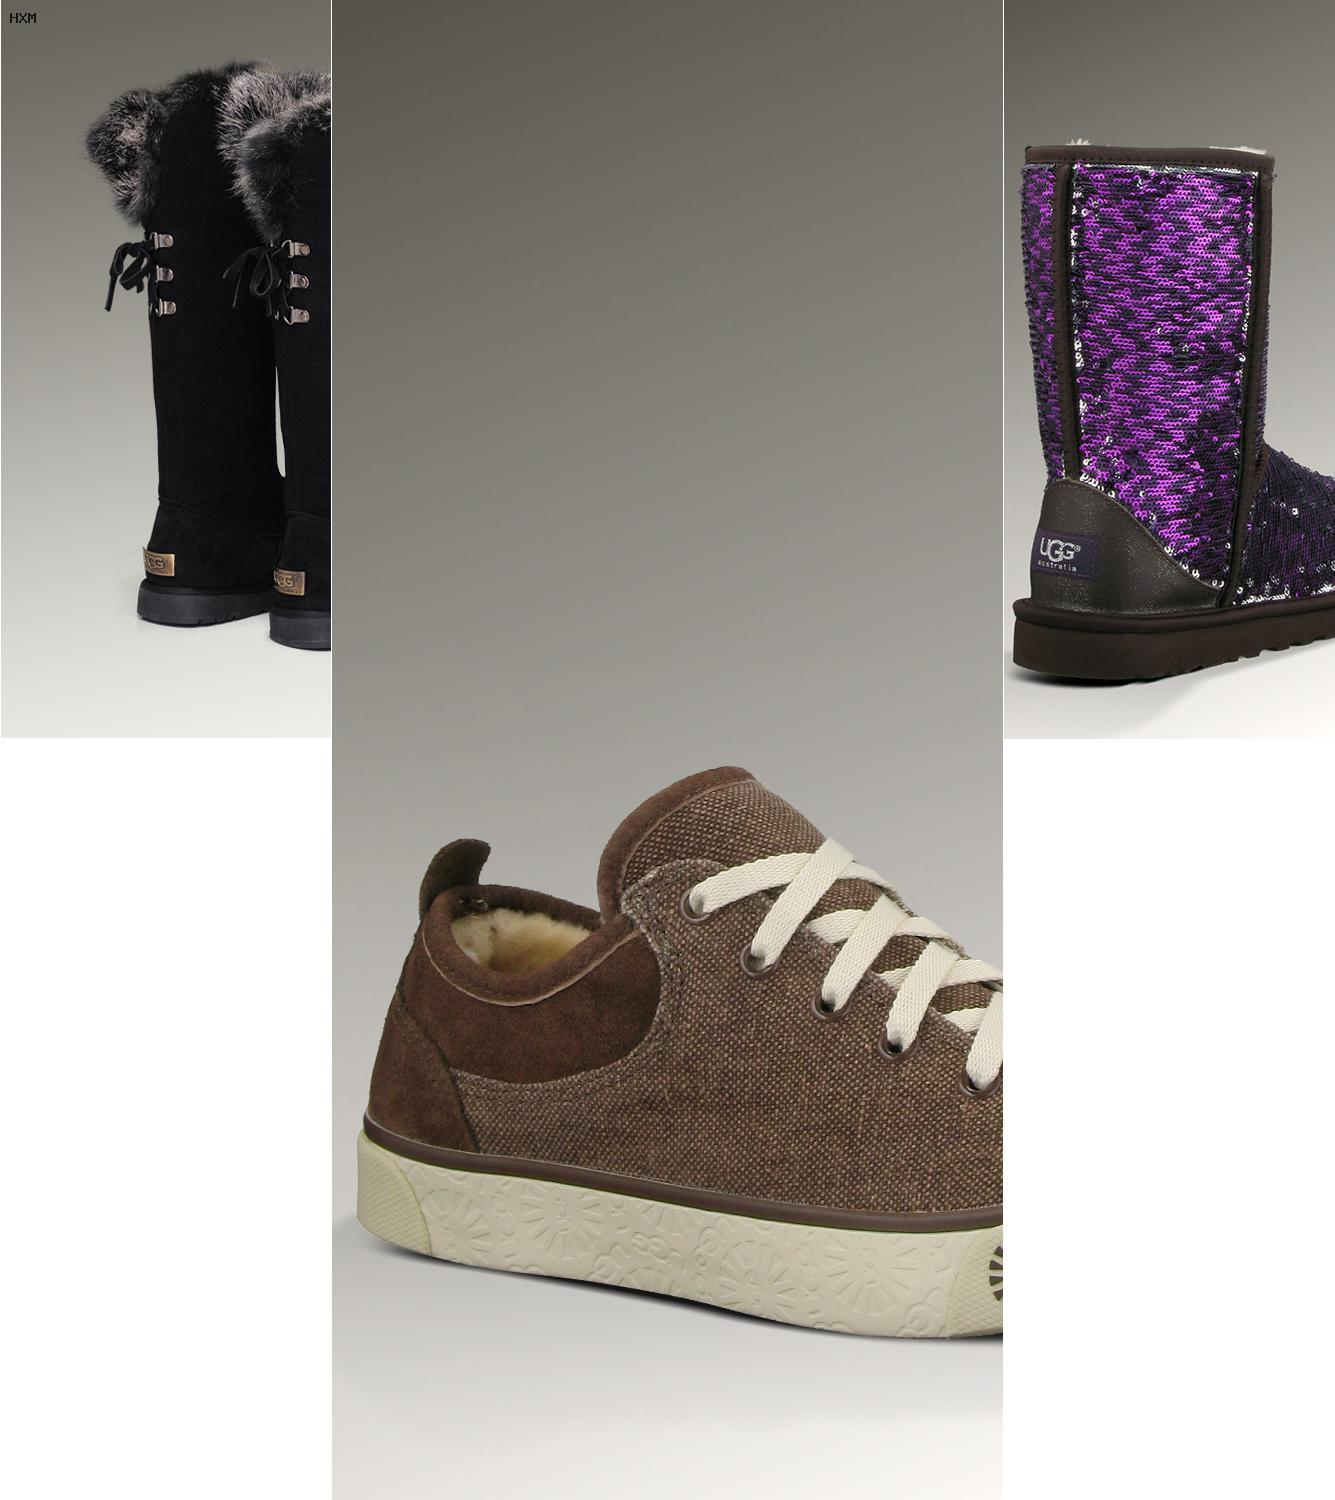 ugg boots germany price